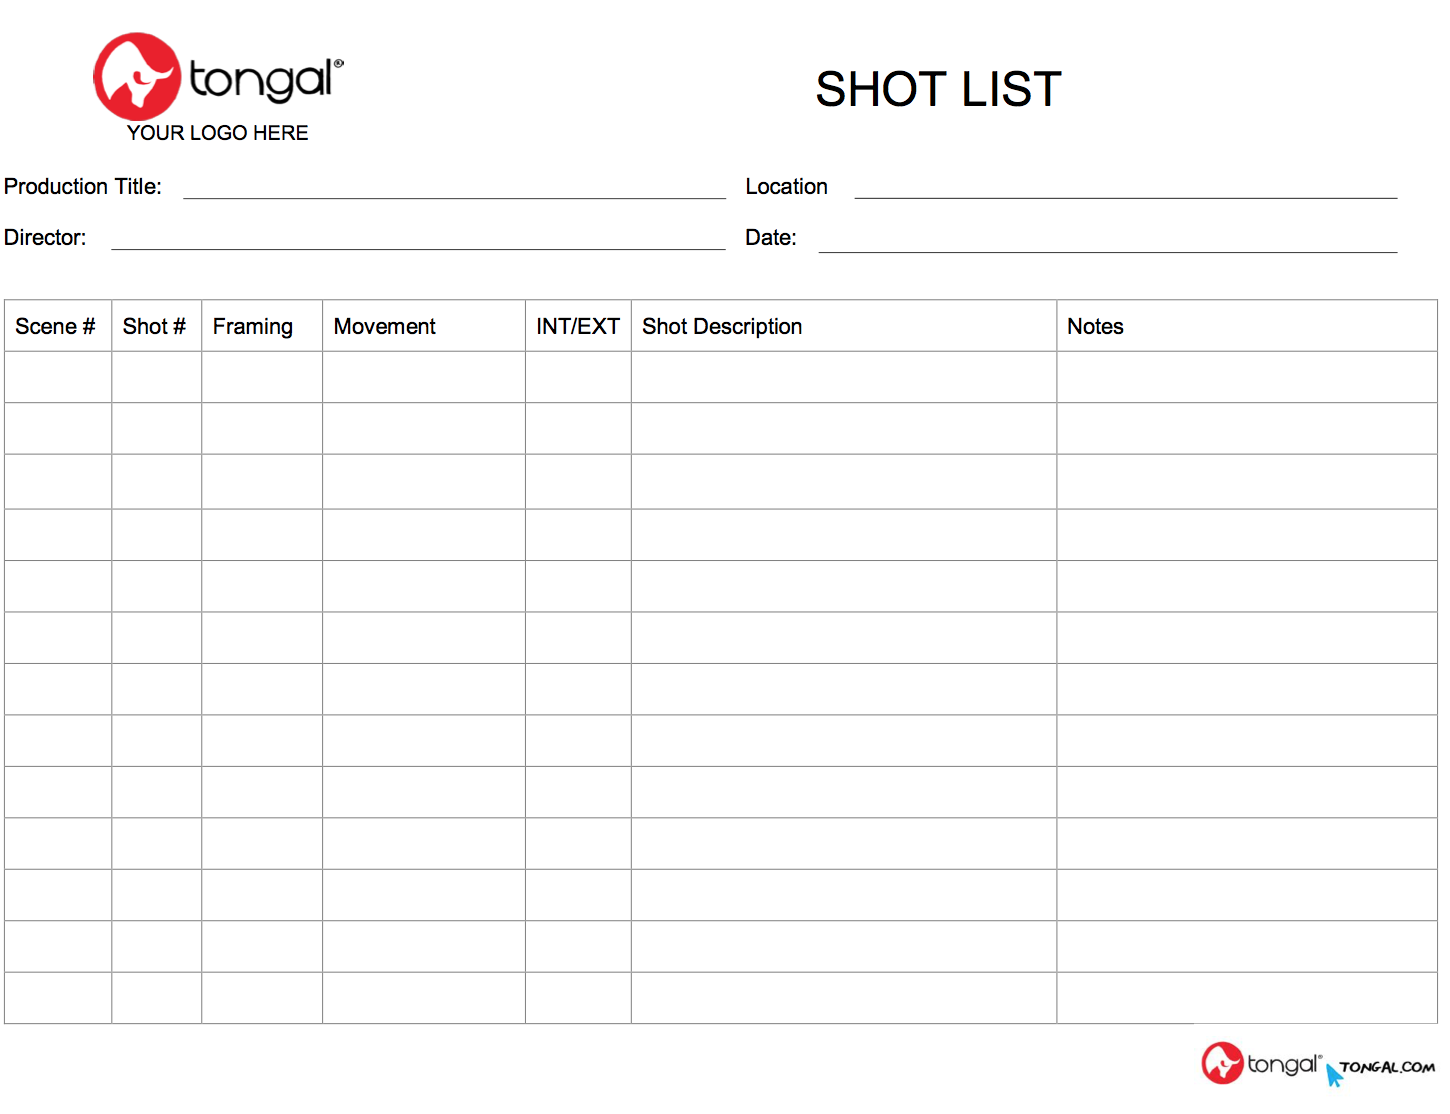 ... Shot List Template In Two Formats: PDF And DOCX (clicking Will Initiate  A Download). Once Downloaded To Your Computer, Youu0027ll Have The Ability To  Edit ...